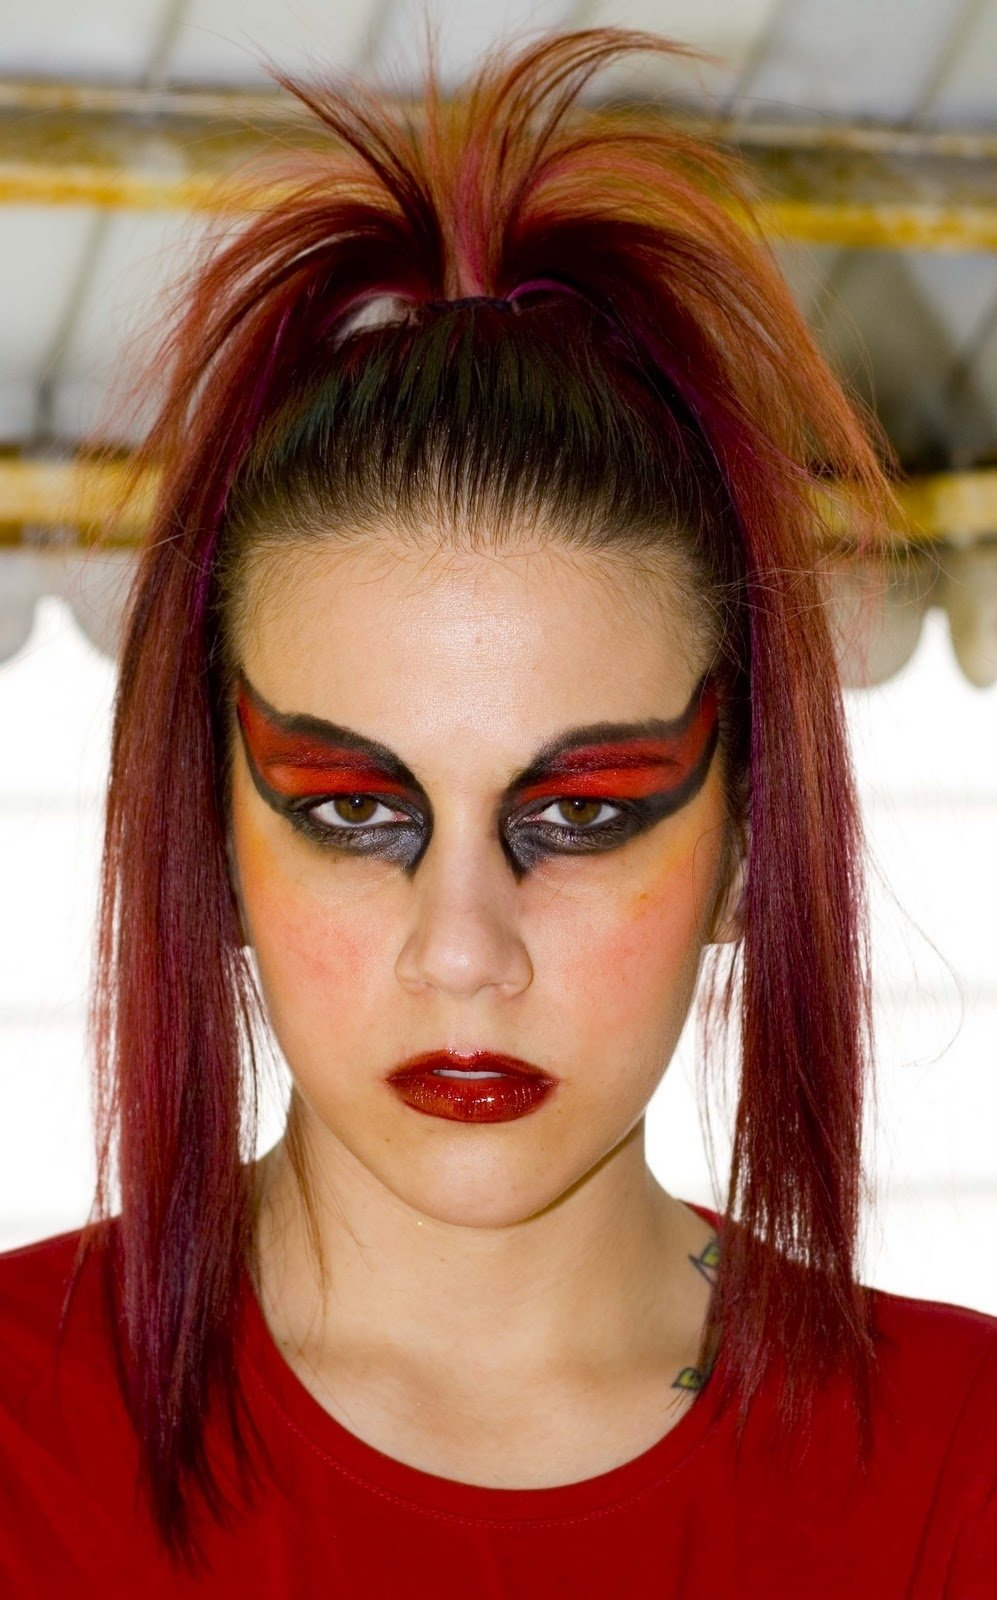 10 Great Devil Makeup Ideas For Women haute chic day 24 of the great makeup challenge